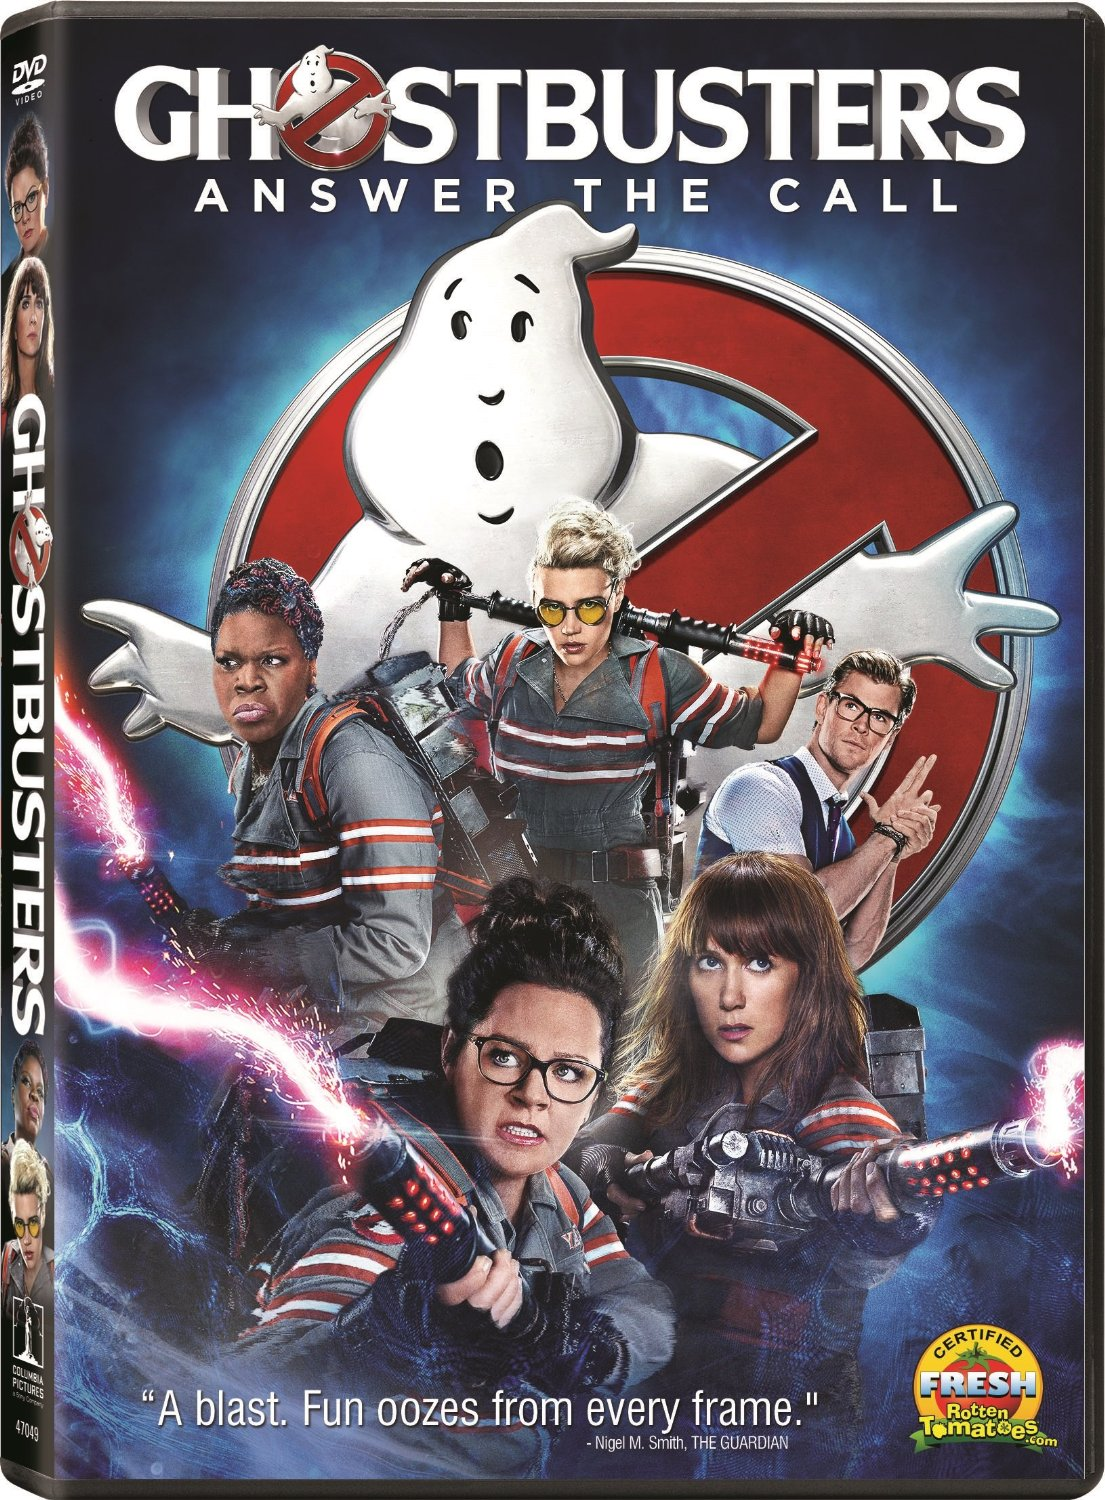 Ghostbusters: Answer the Call